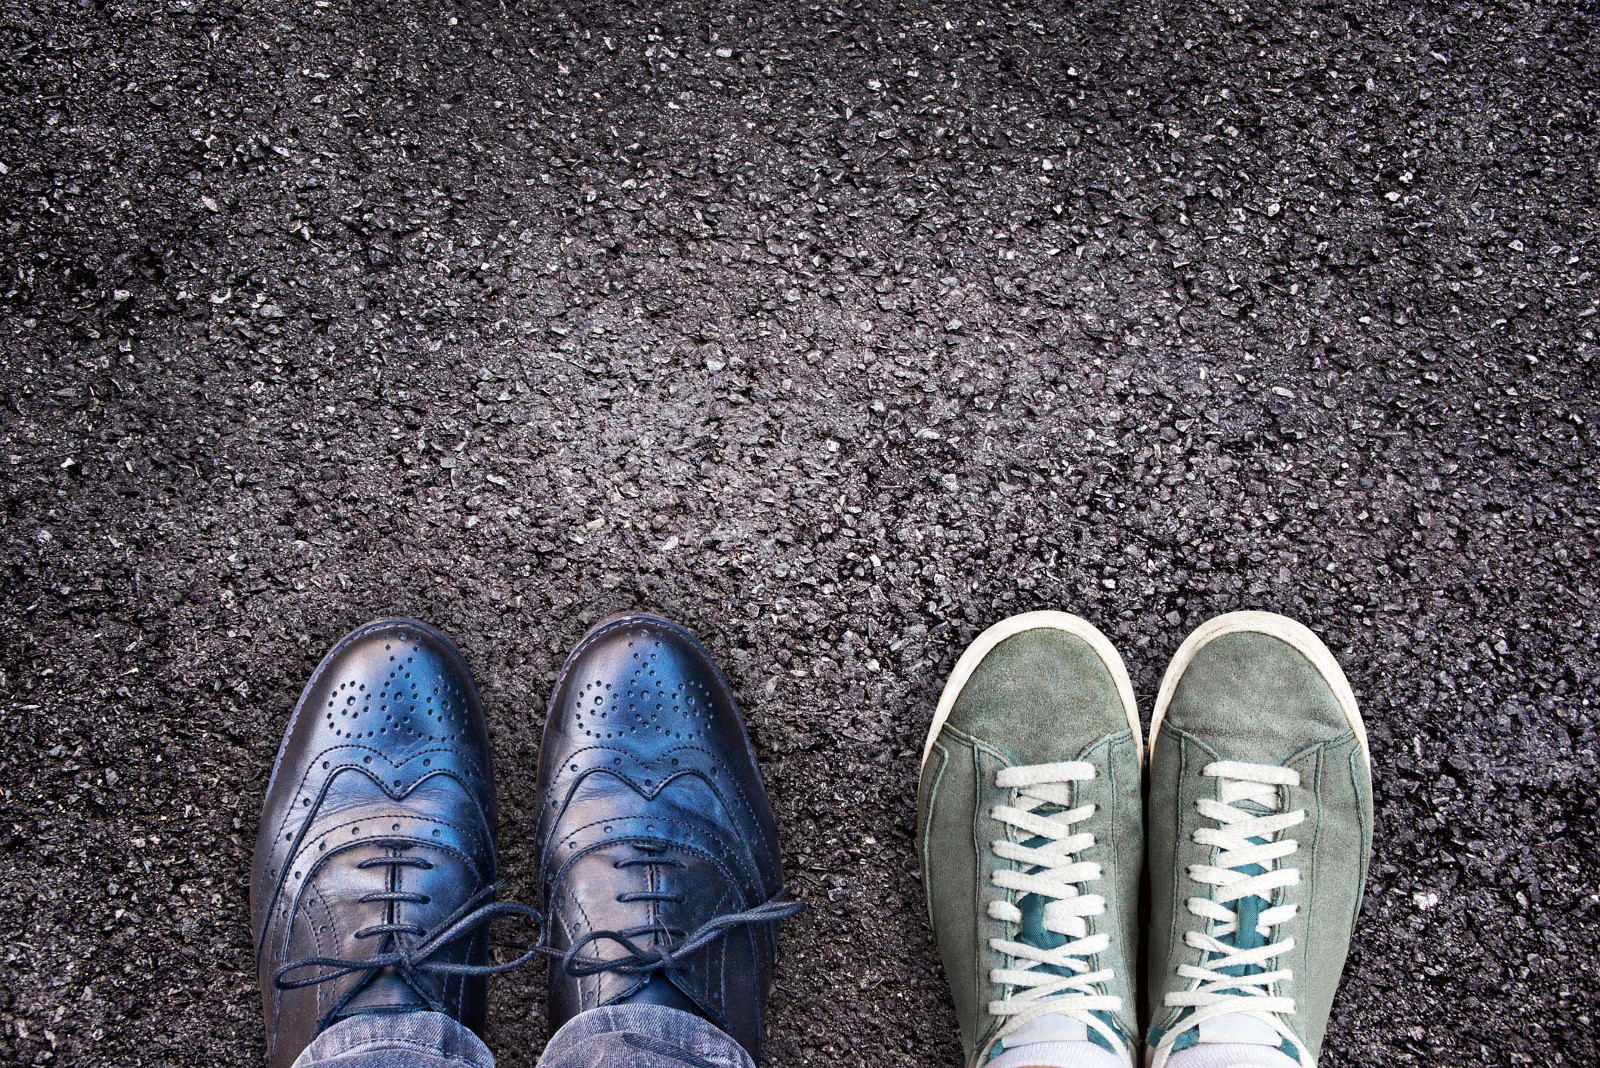 Sneakers and business shoes side by side on ground